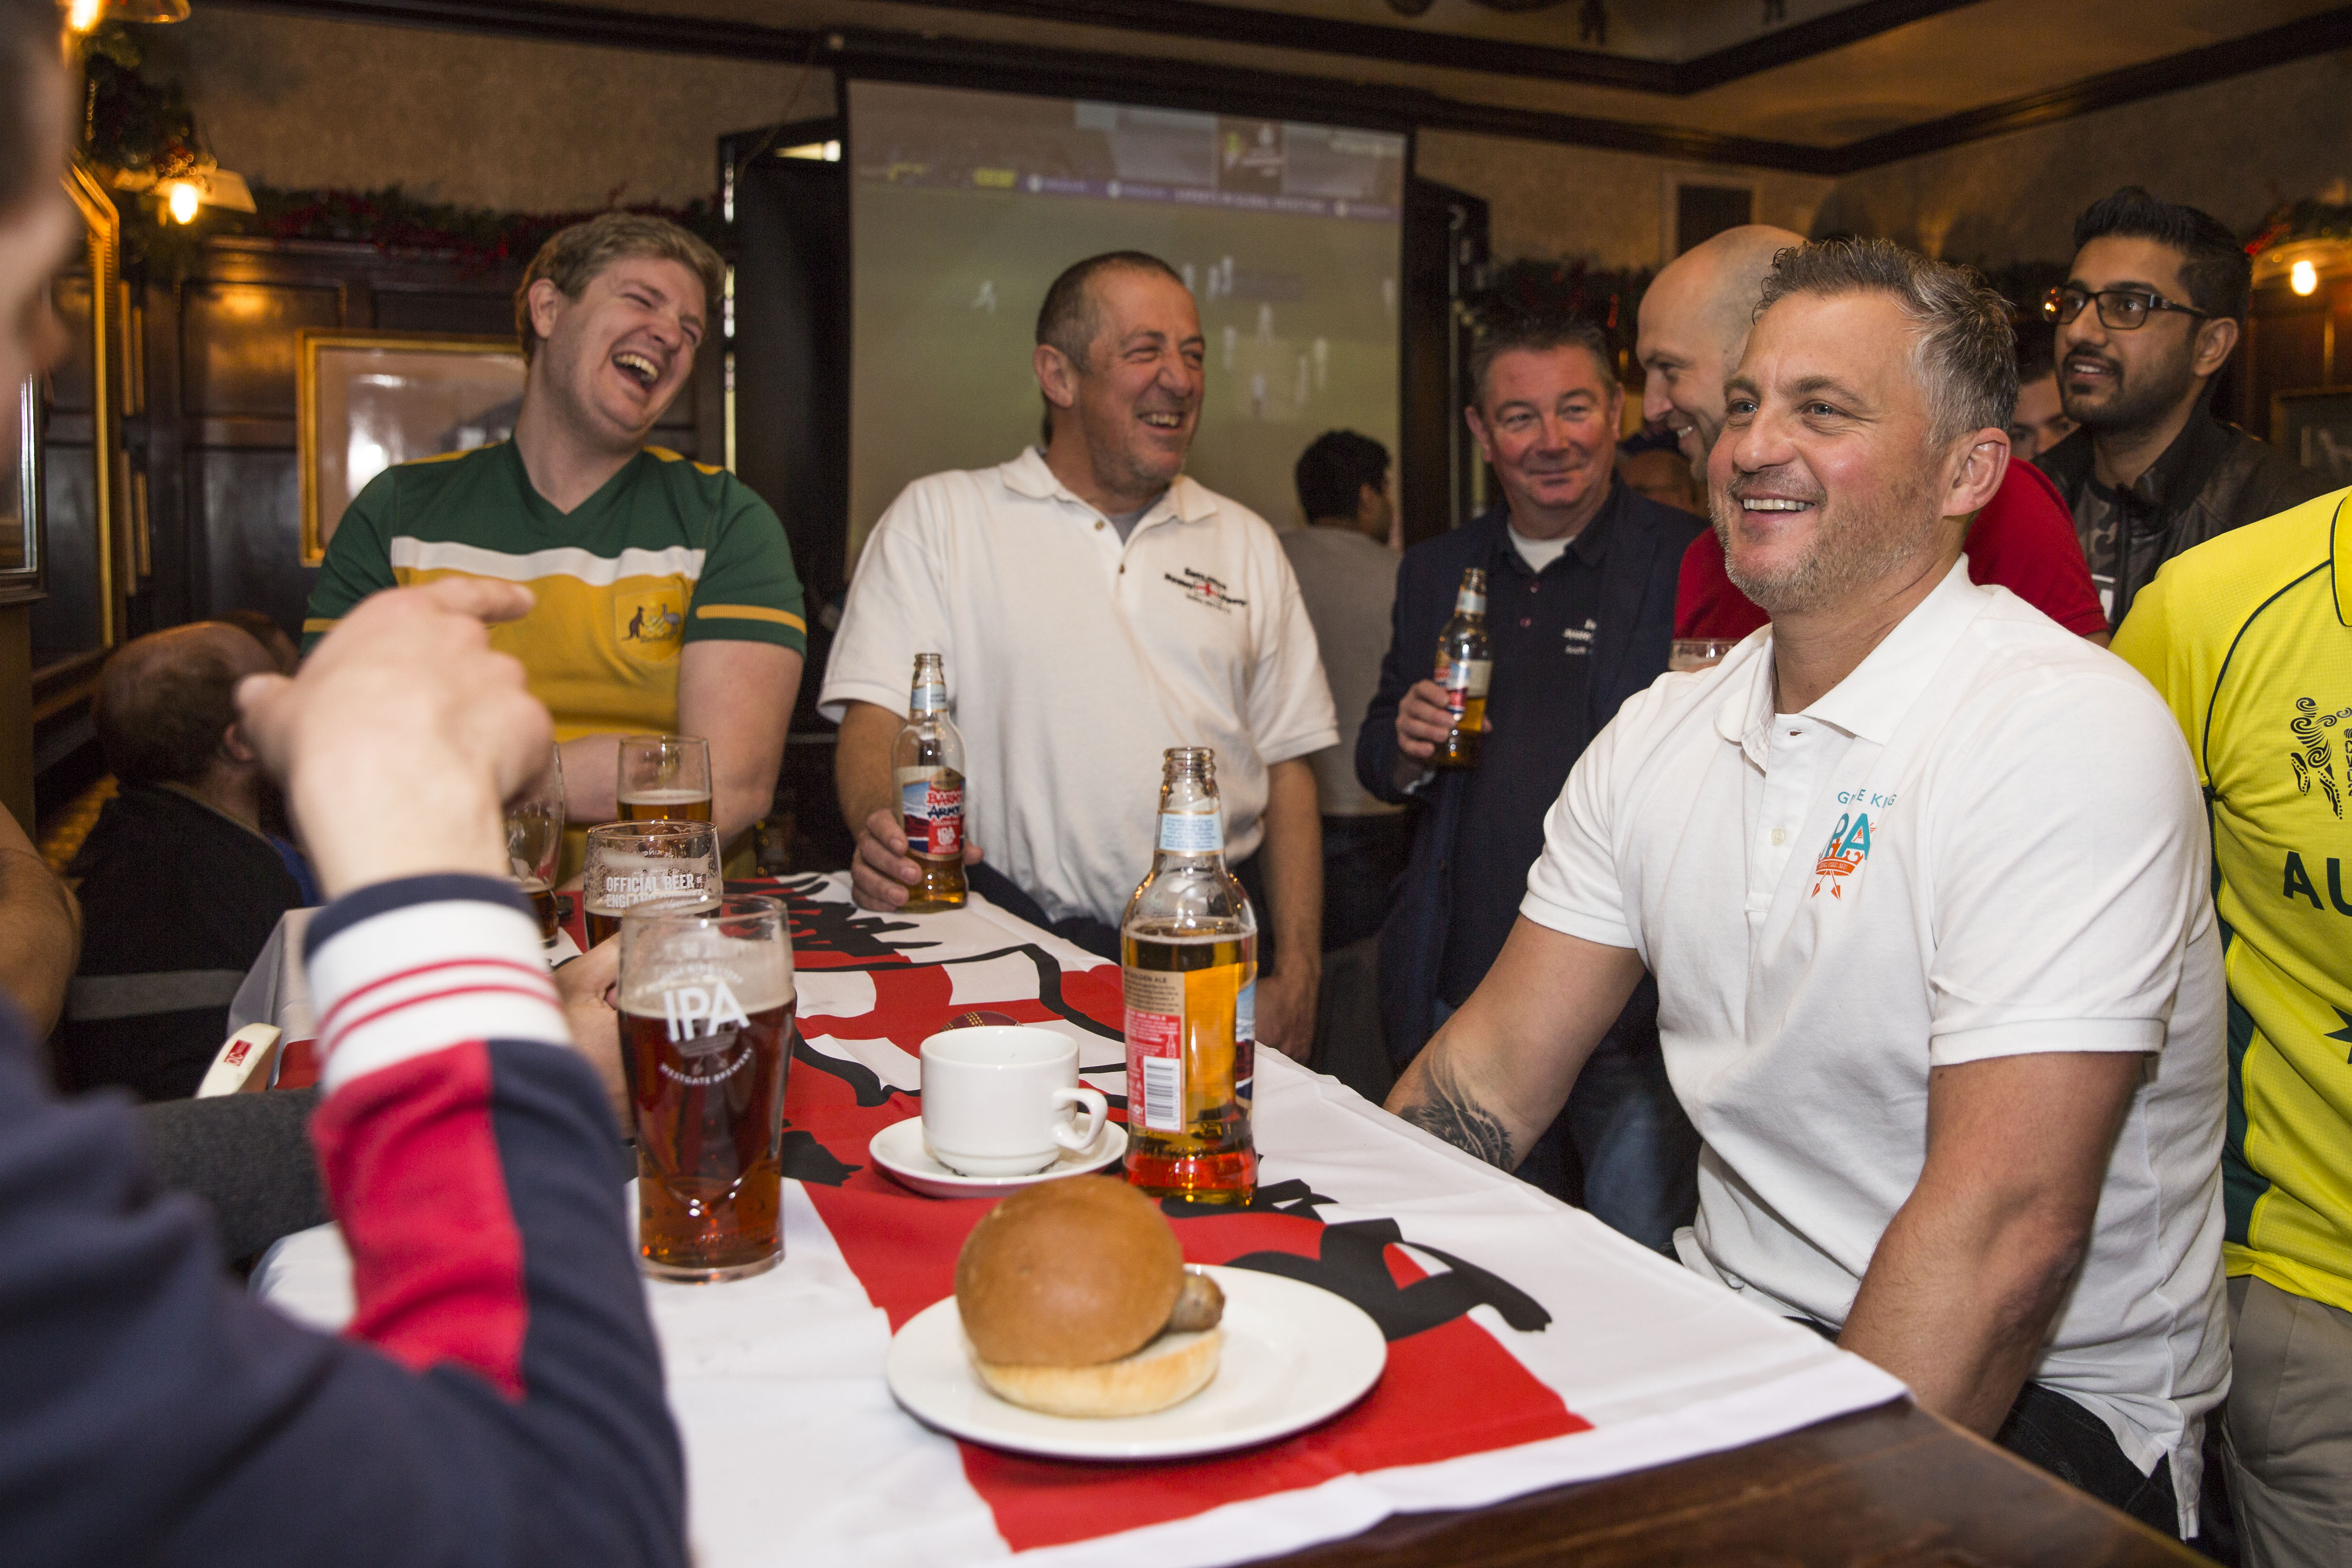 England cricket legend Darren Gough met with fans for a breakfast and a pint